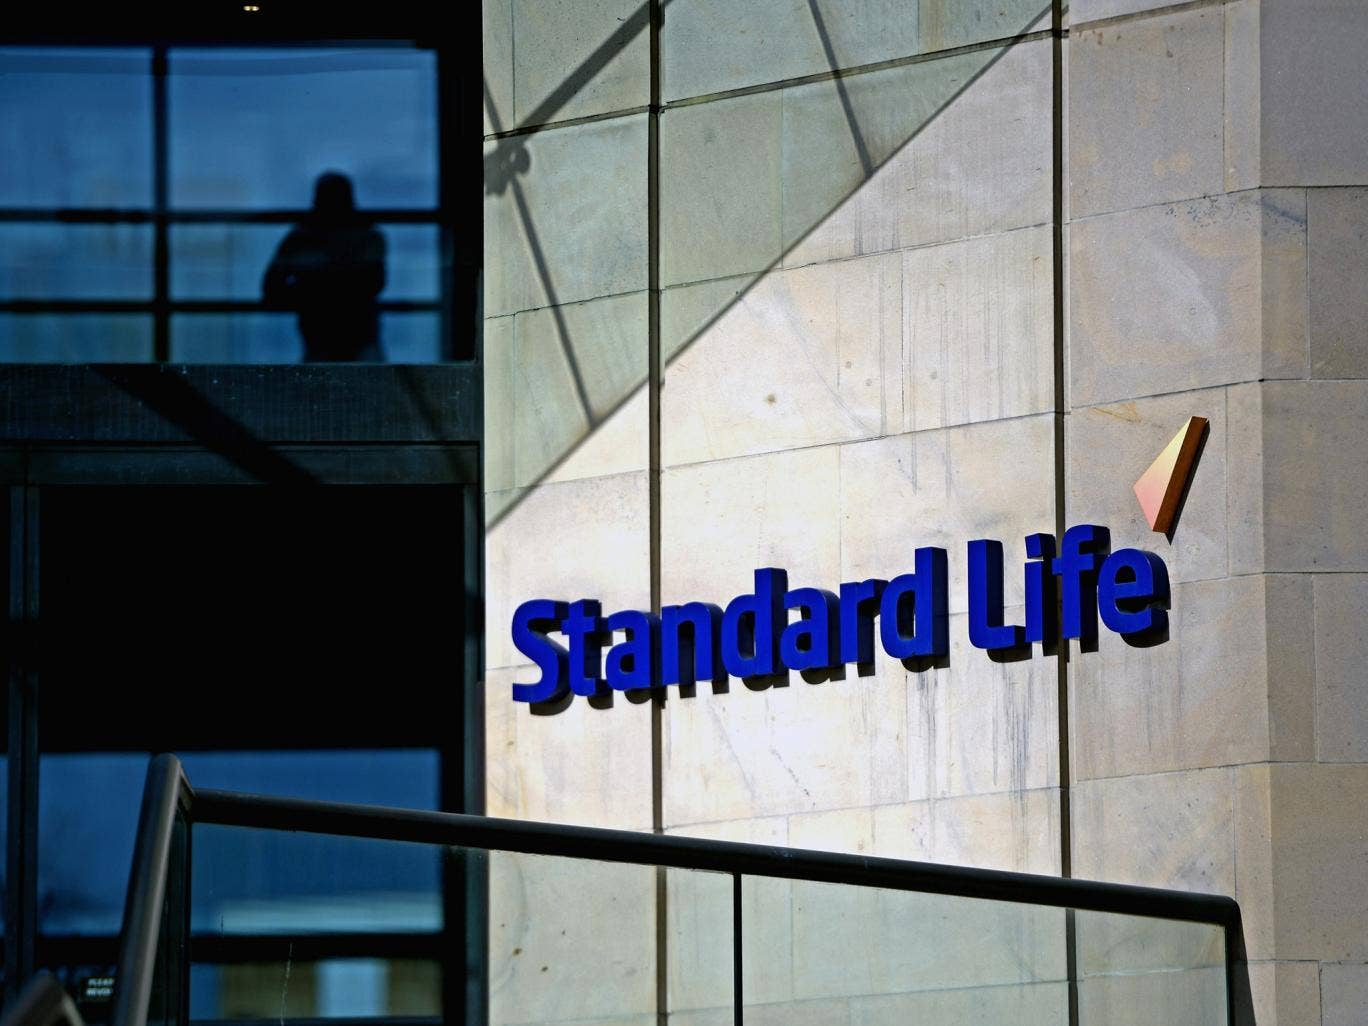 Standard Life, the Edinburgh-based pensions and savings firm, has announced that it is making contingency plans to move its business from Scotland if there is a Yes vote in the independence referendum